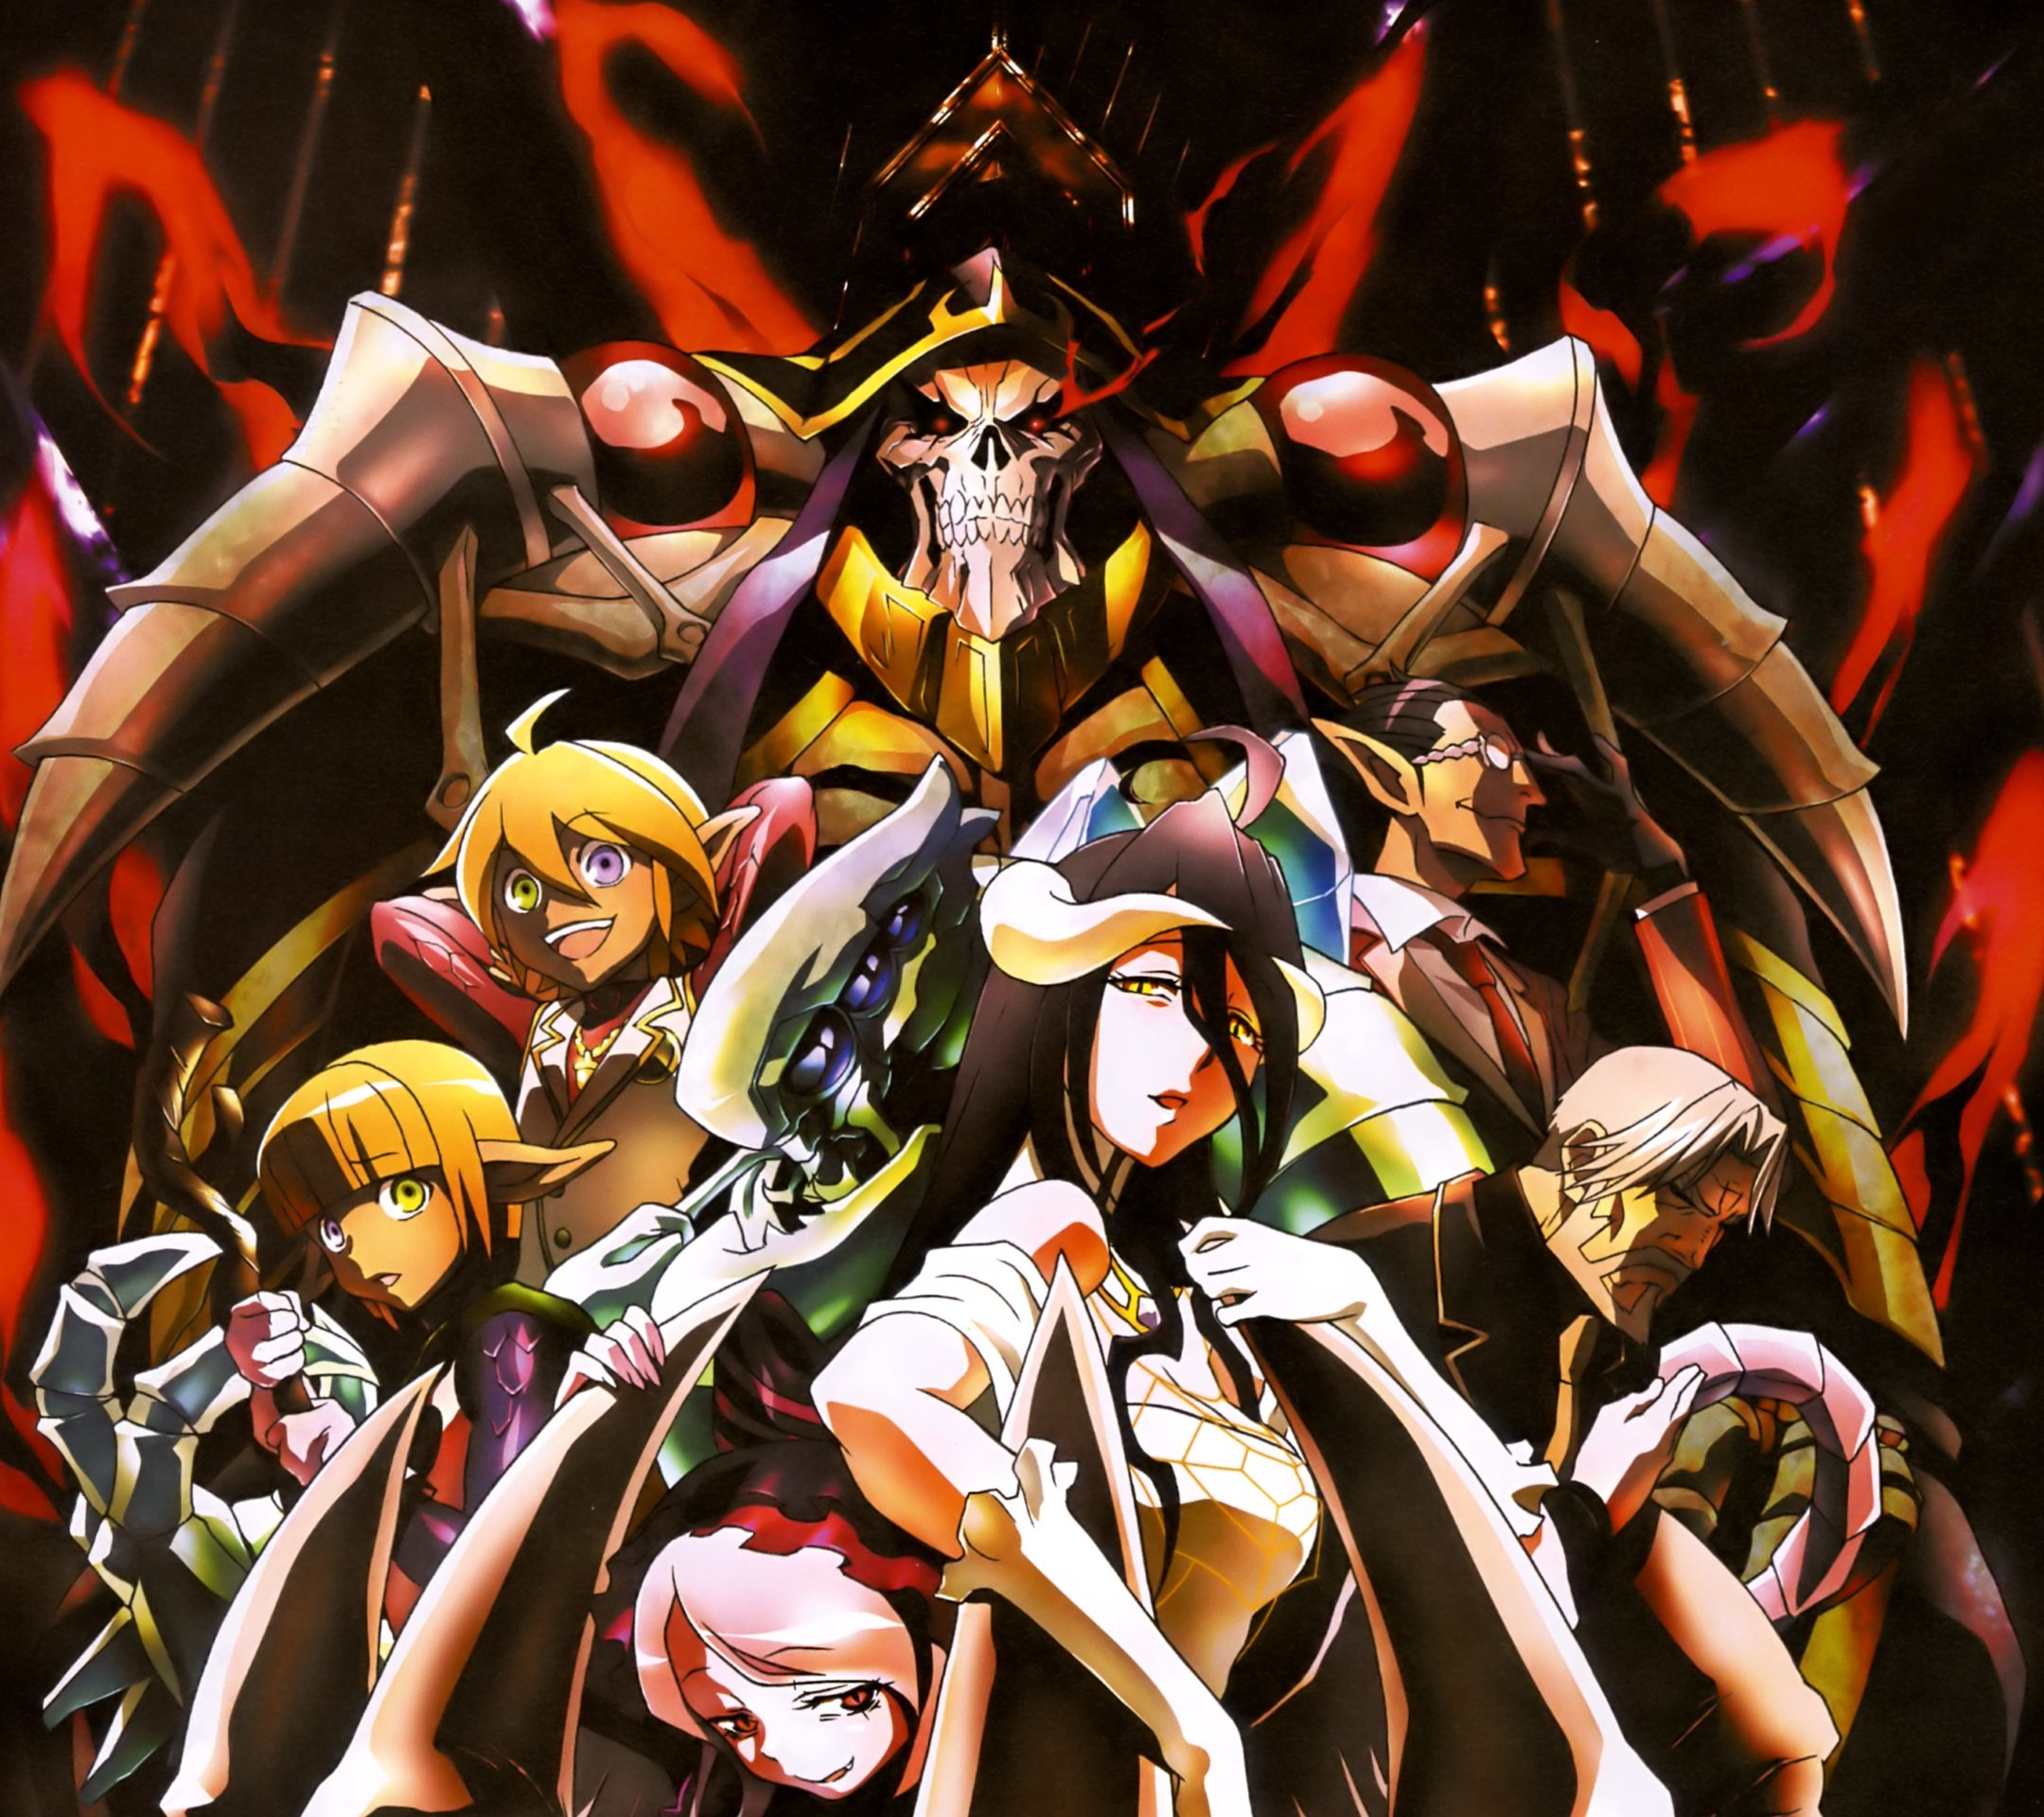 Free Download Overlord Anime Wallpapers For Smartphones